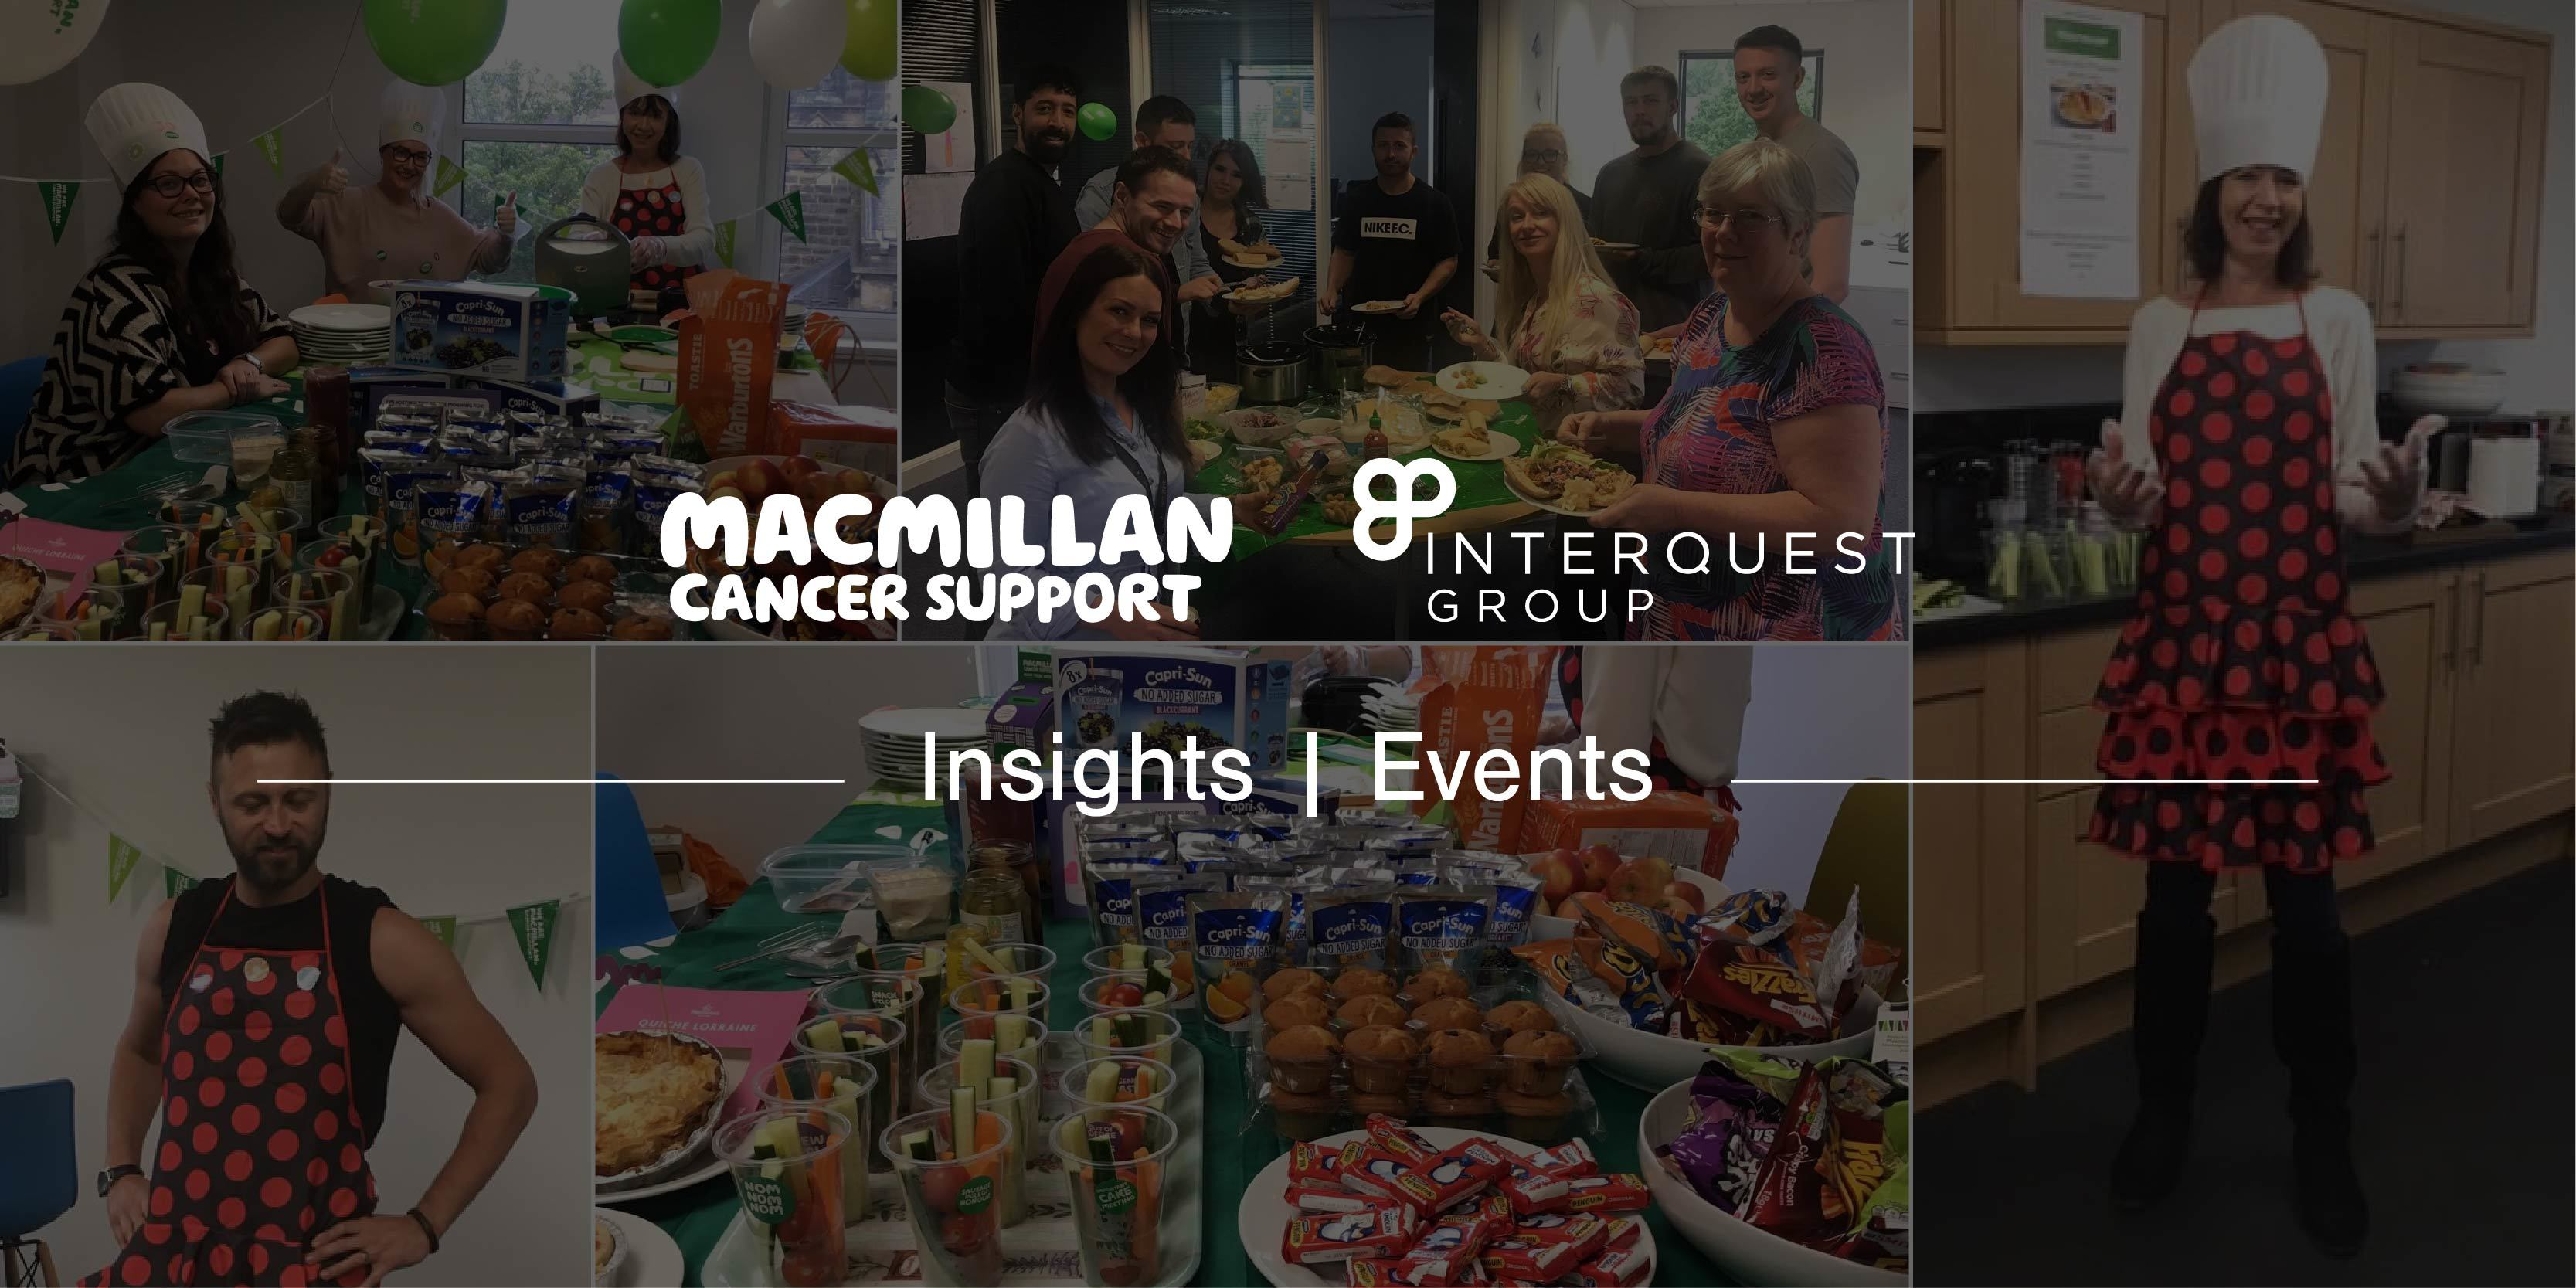 White Macmillan and InterQuest Group logos on collage background of photos from Macmillan Coffee Morning